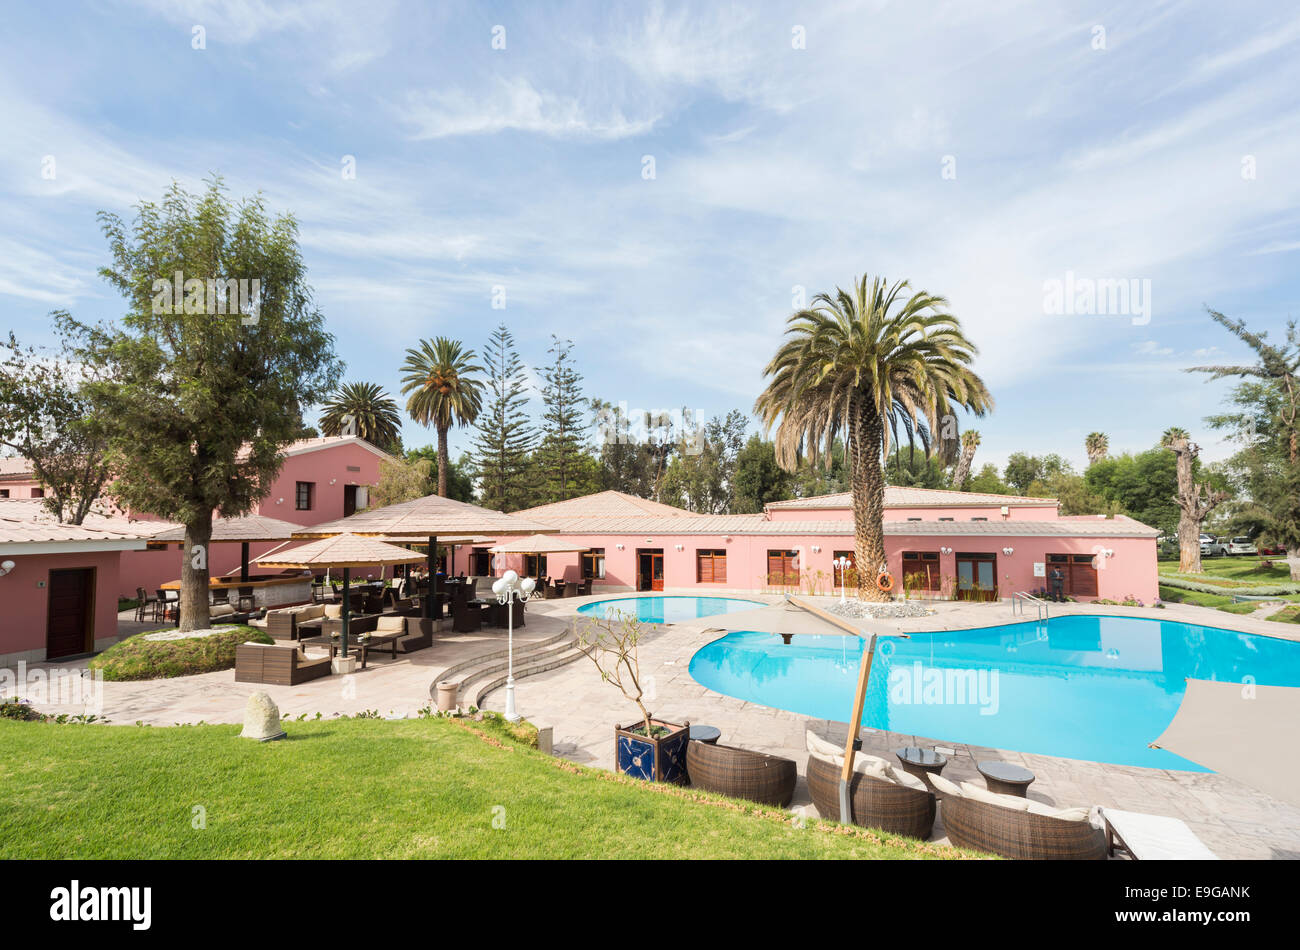 Gardens of Hotel Libertador, Arequipa, Peru, with blue swimming pool and palm trees - Stock Image